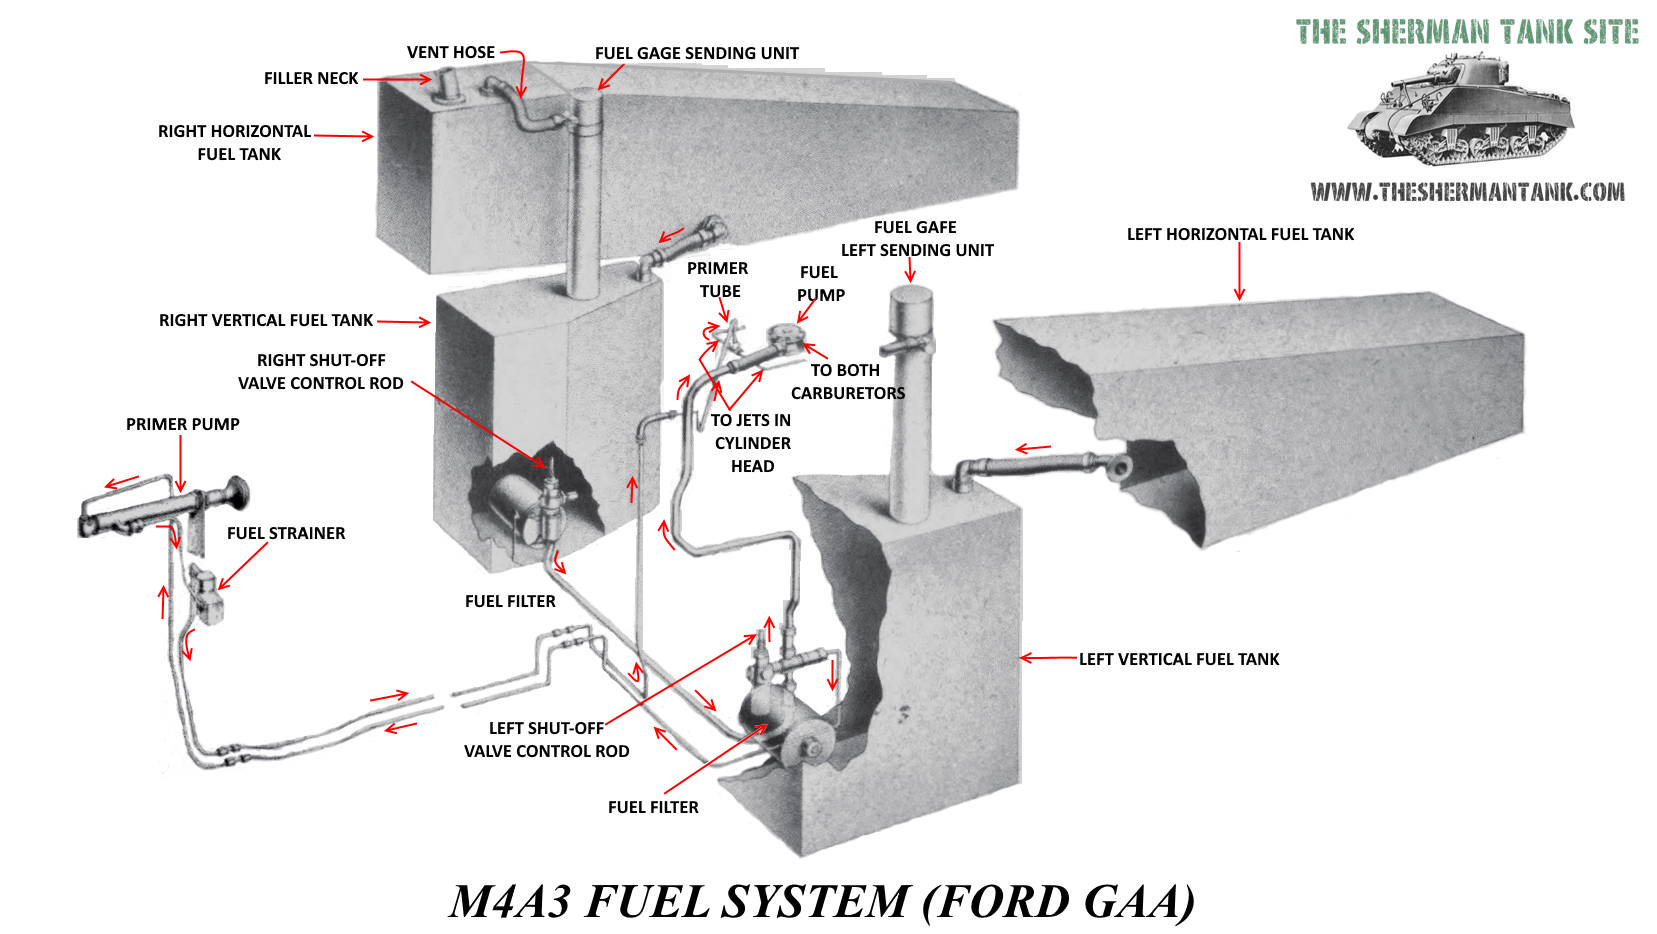 ford-GAA-fuel-system-A3-tanks-improved-F